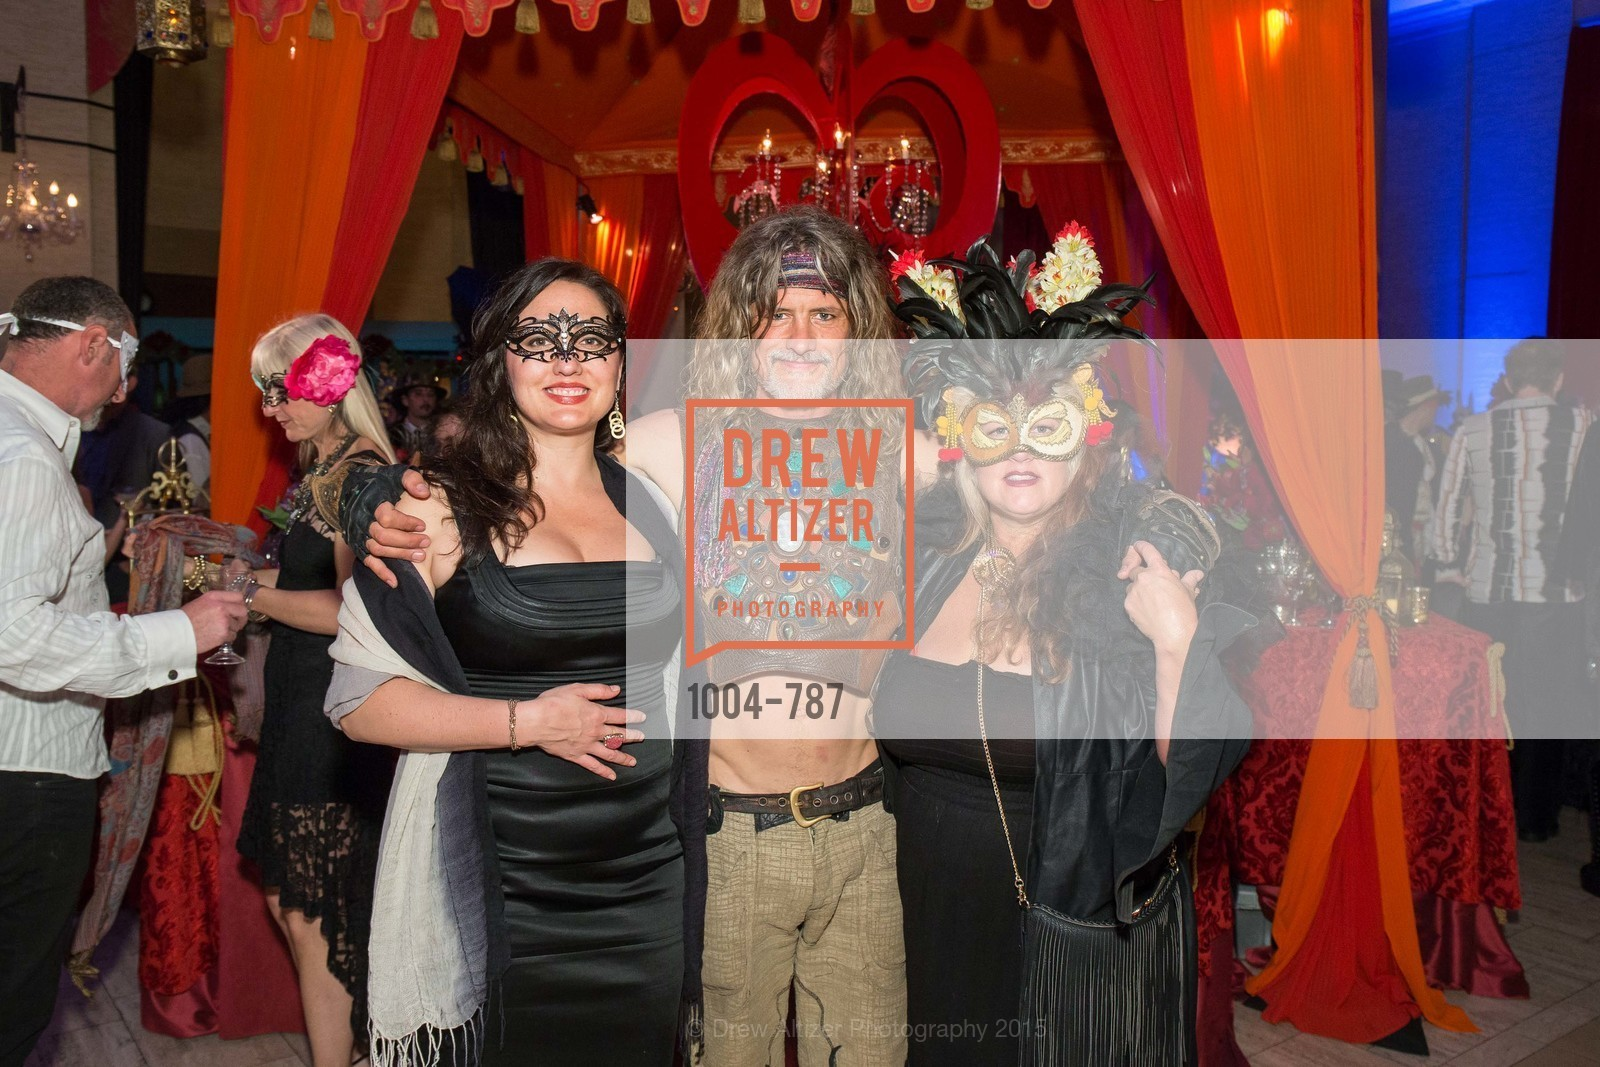 Charity Toode, Prashanti DeJager, Shakti Kennedy, Bently Engagement, US, April 14th, 2015,Drew Altizer, Drew Altizer Photography, full-service agency, private events, San Francisco photographer, photographer california